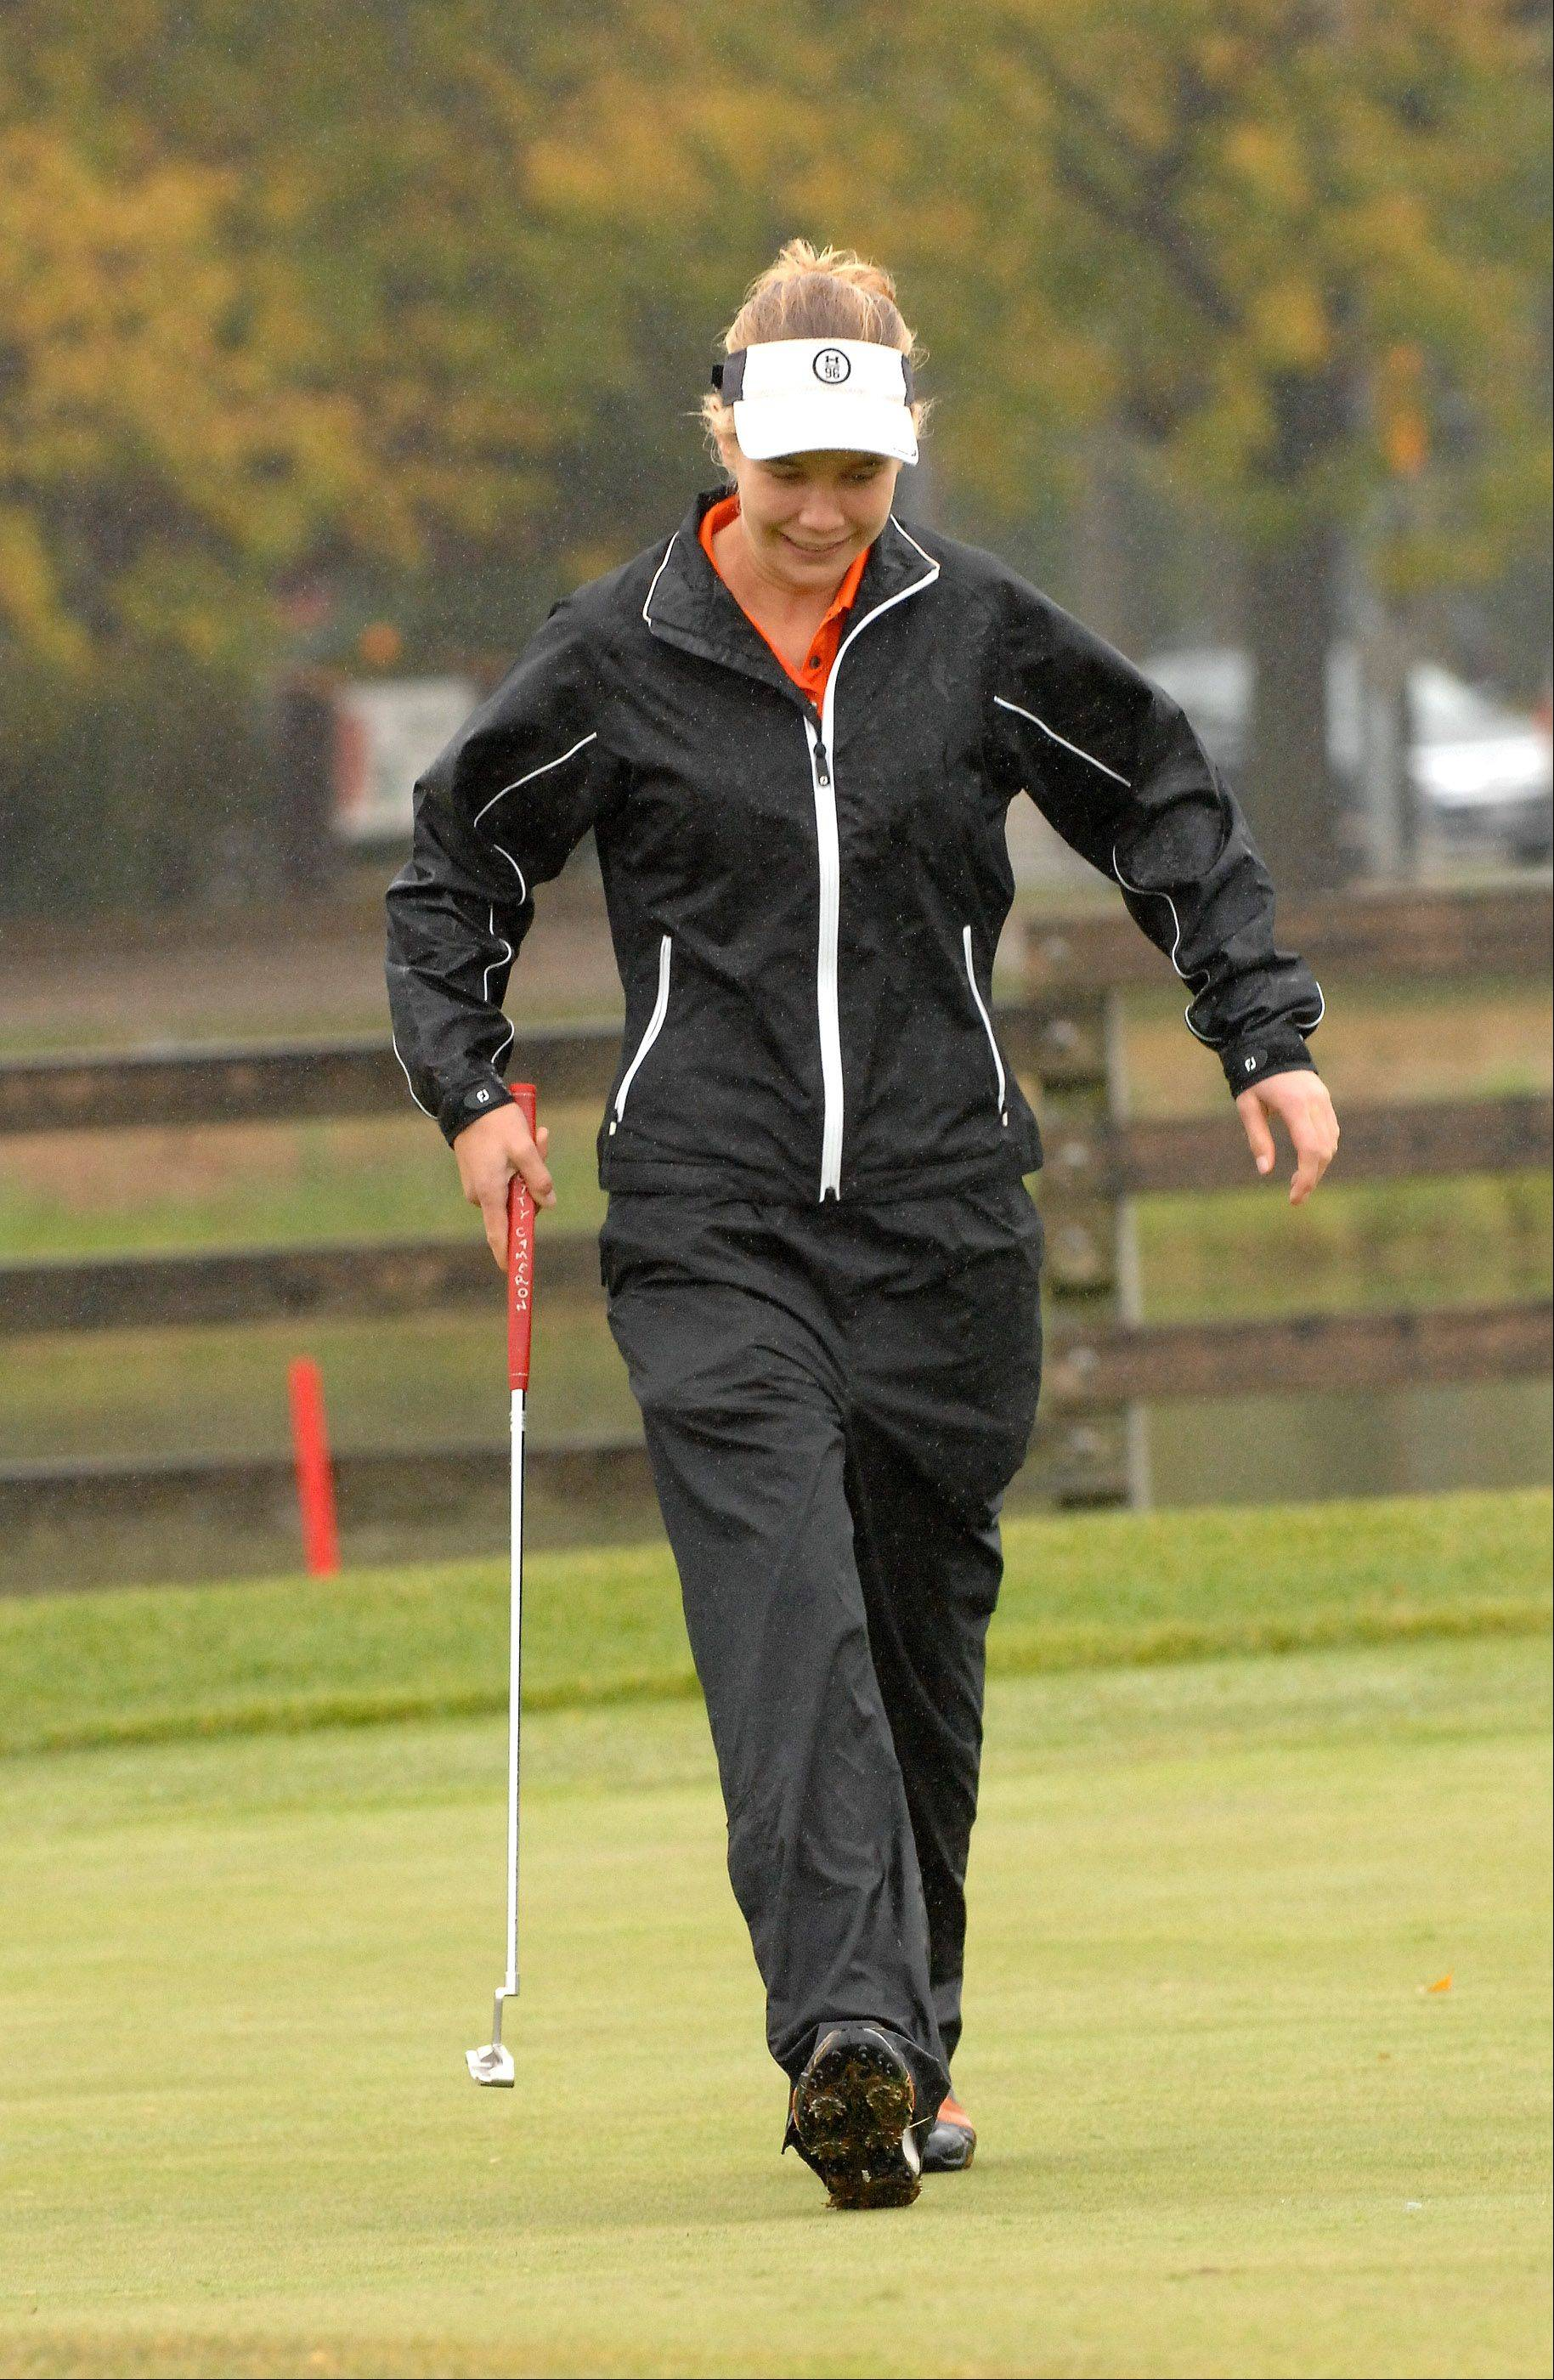 Kelly Anderson, from Wheaton Warrenville South, reacts to sinking her put on the 3rd hole at the York girls golf regional at Maple Meadows Golf Course in Wood Dale.